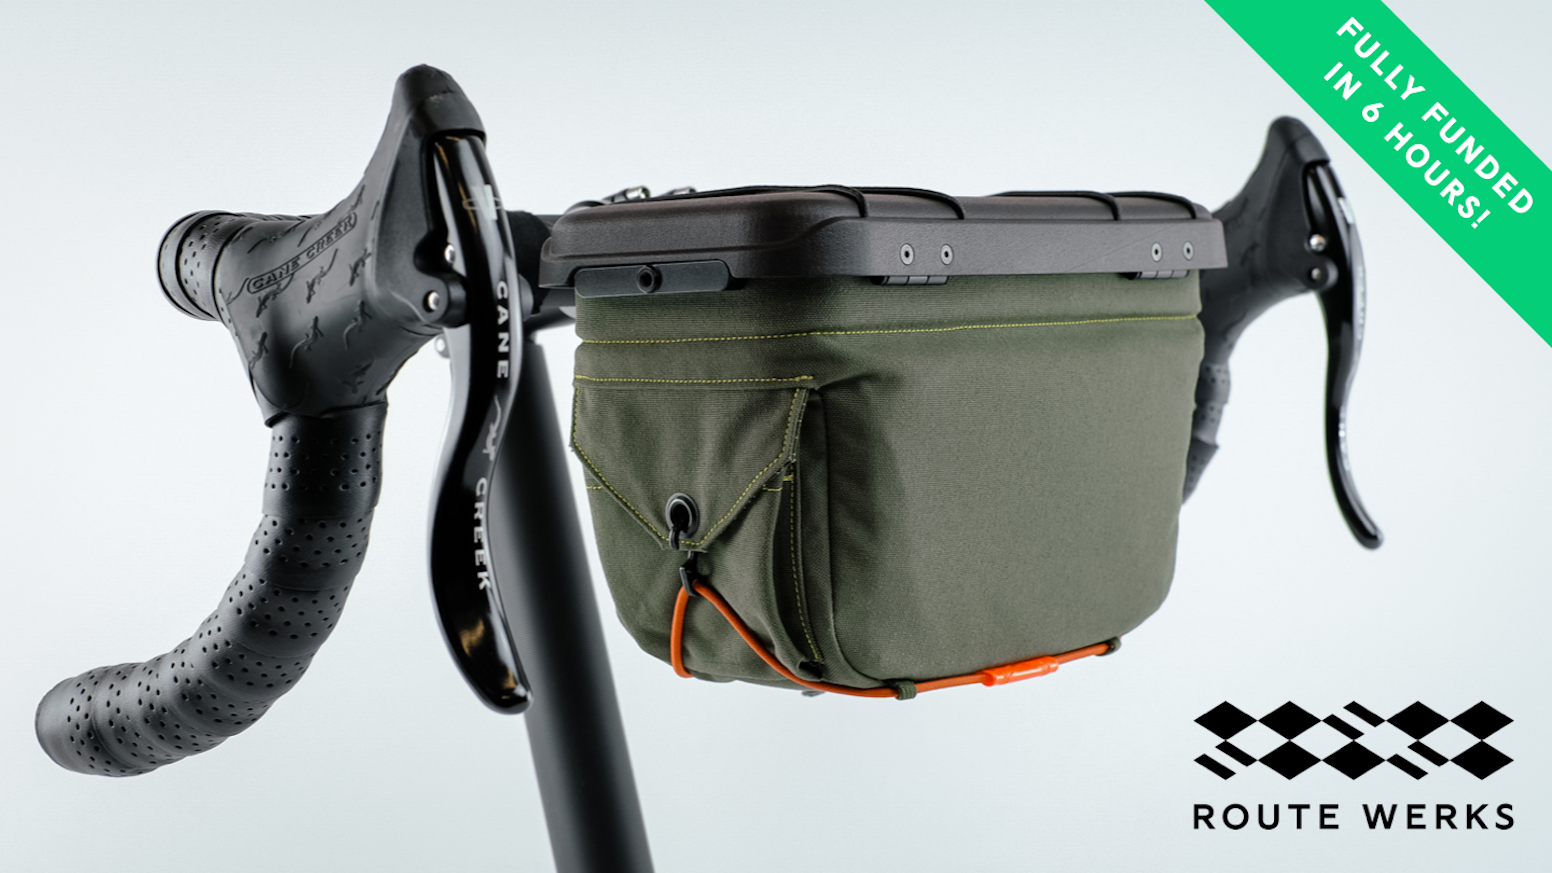 A minimal and modern bicycle bag that puts your tech at your fingertips and looks great on your bike!